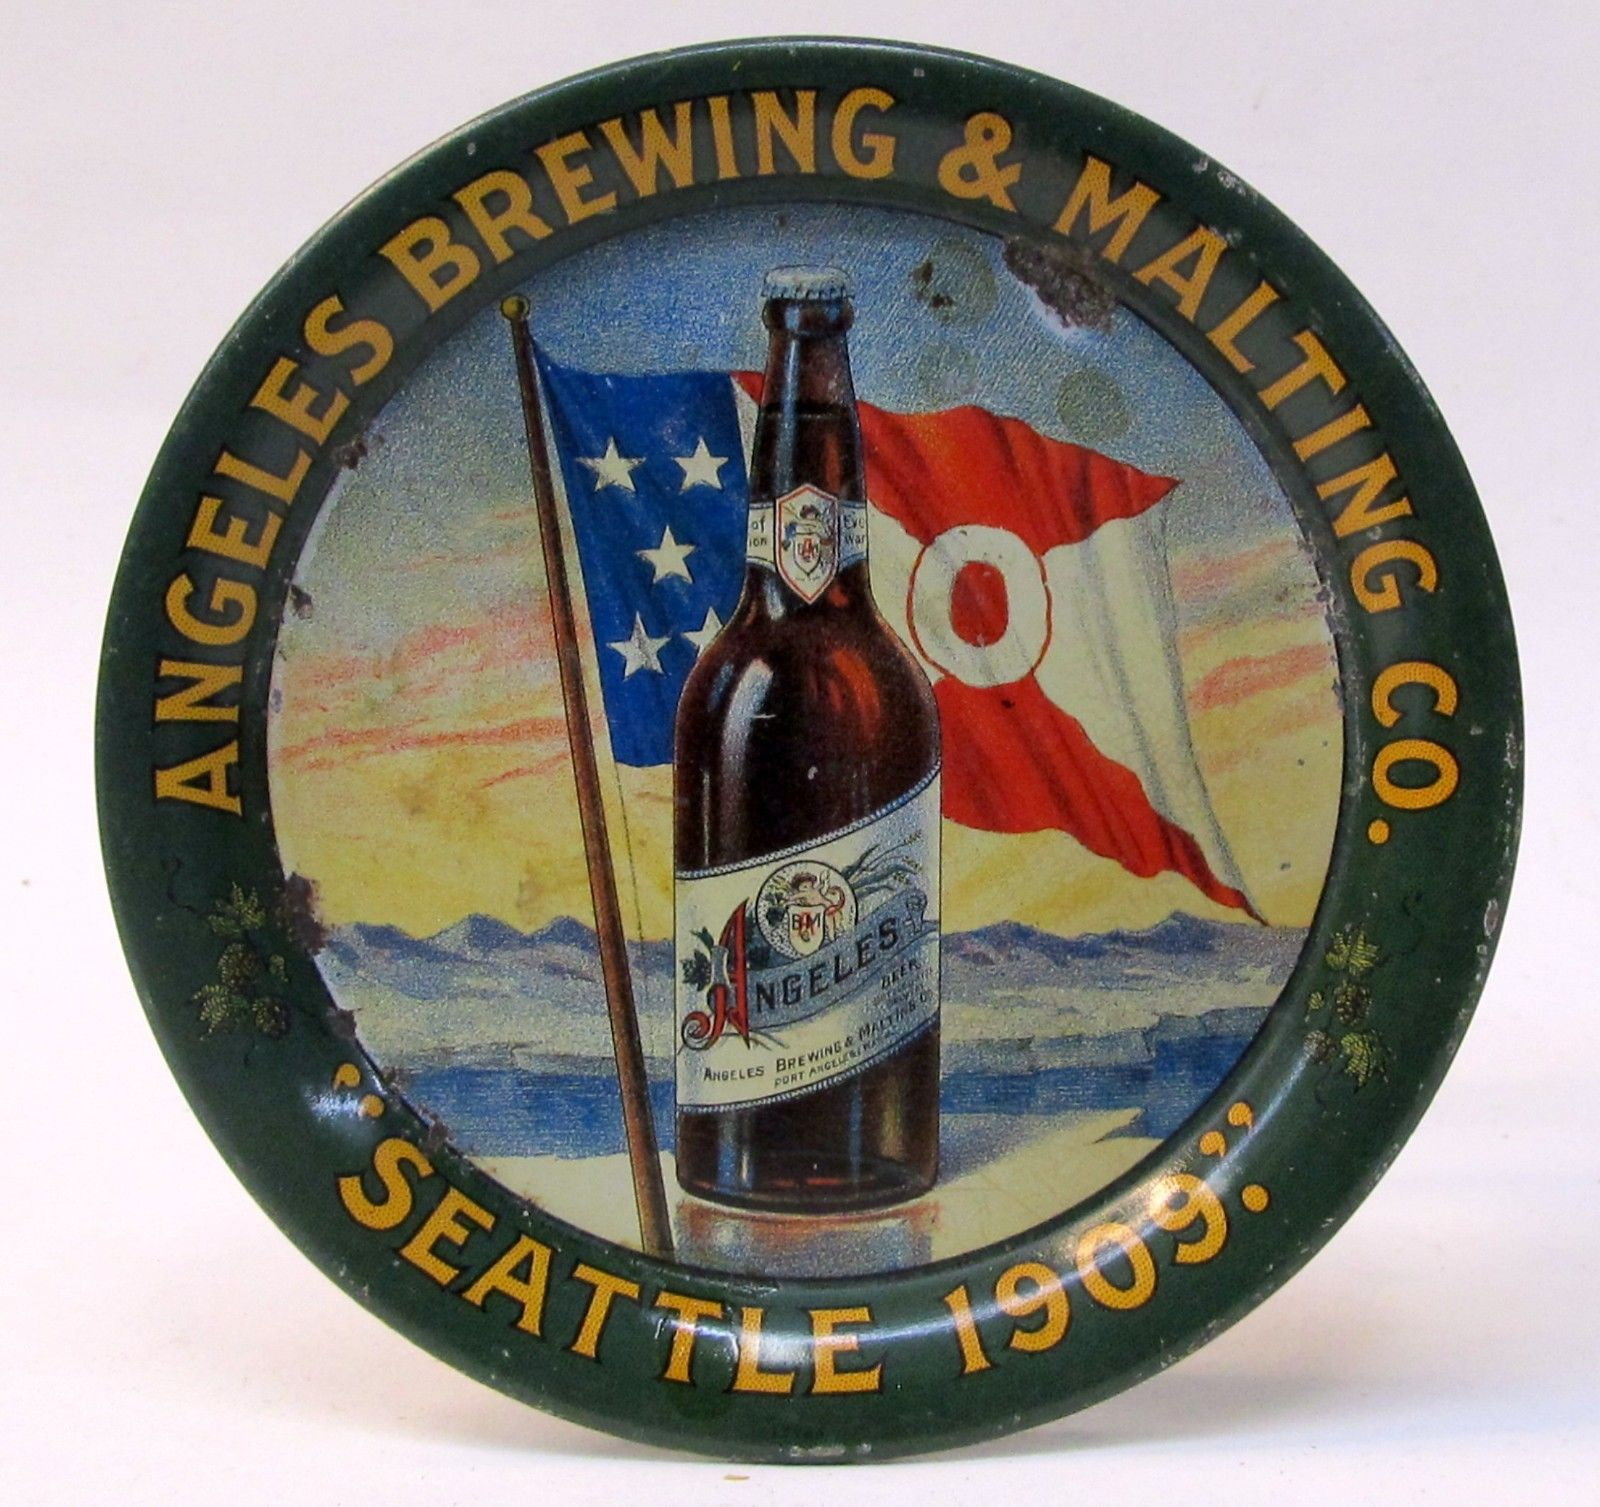 Angeles Brewing Beer, Tip Tray, Port Angeles, WA, Seattle Exhibition 1909